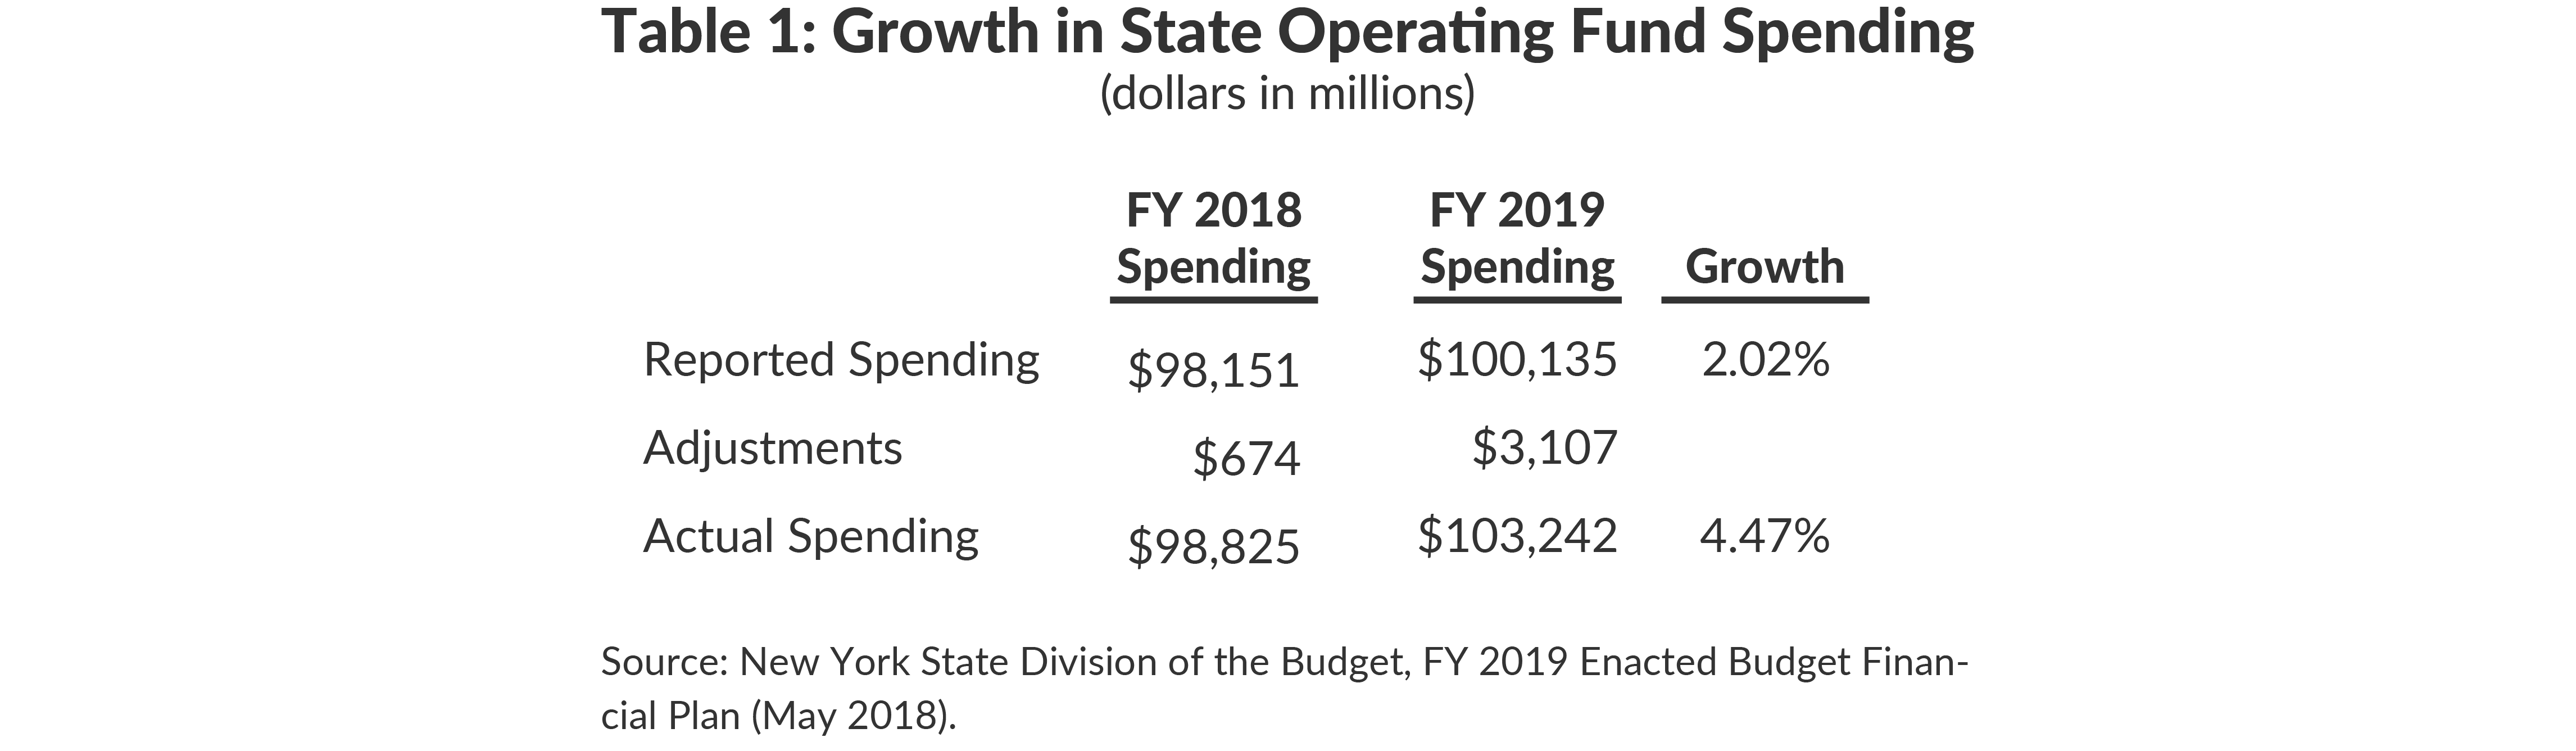 Table 1: Growth in State Operating Fund Spending